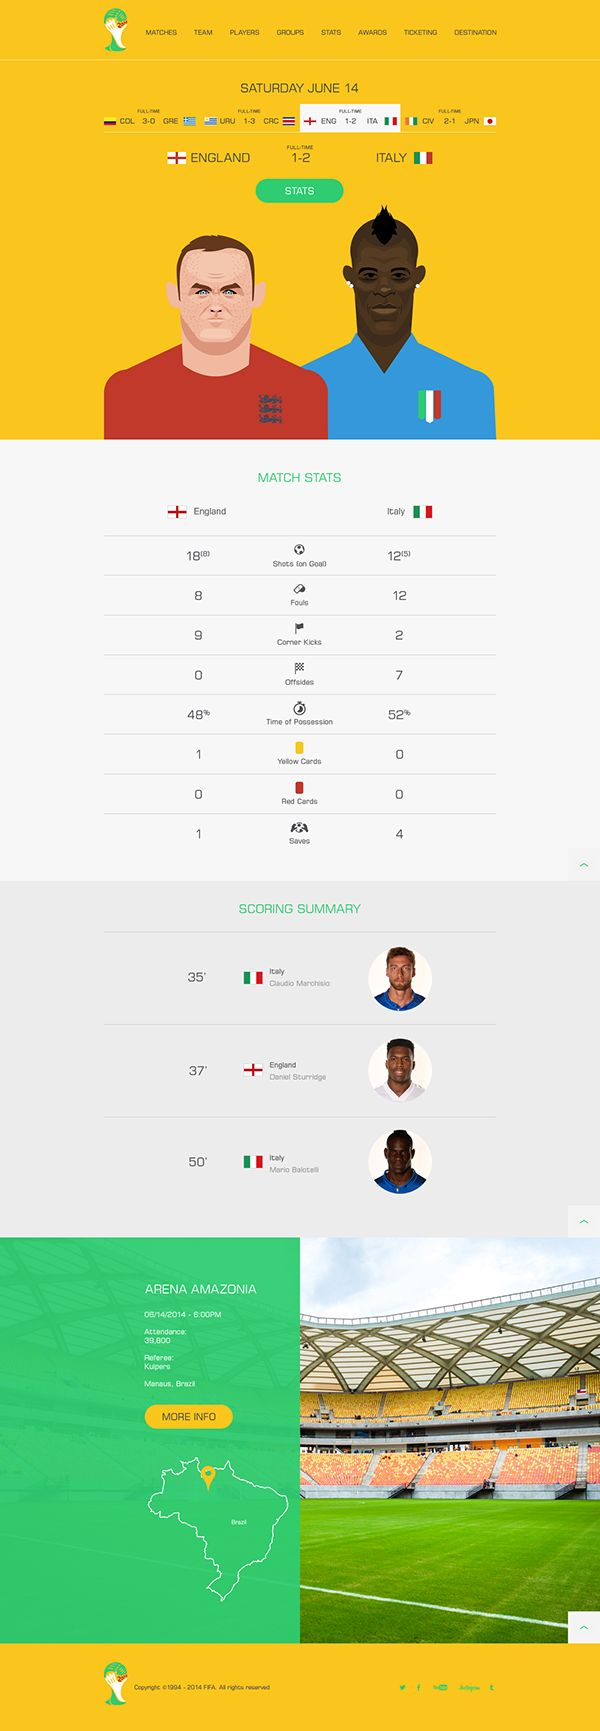 A mock up of Fifa's official World Cup website combining ESPN's mobile app graphics and information. - Created Balotelli and Rooney to showcase the stars of each match played that day.